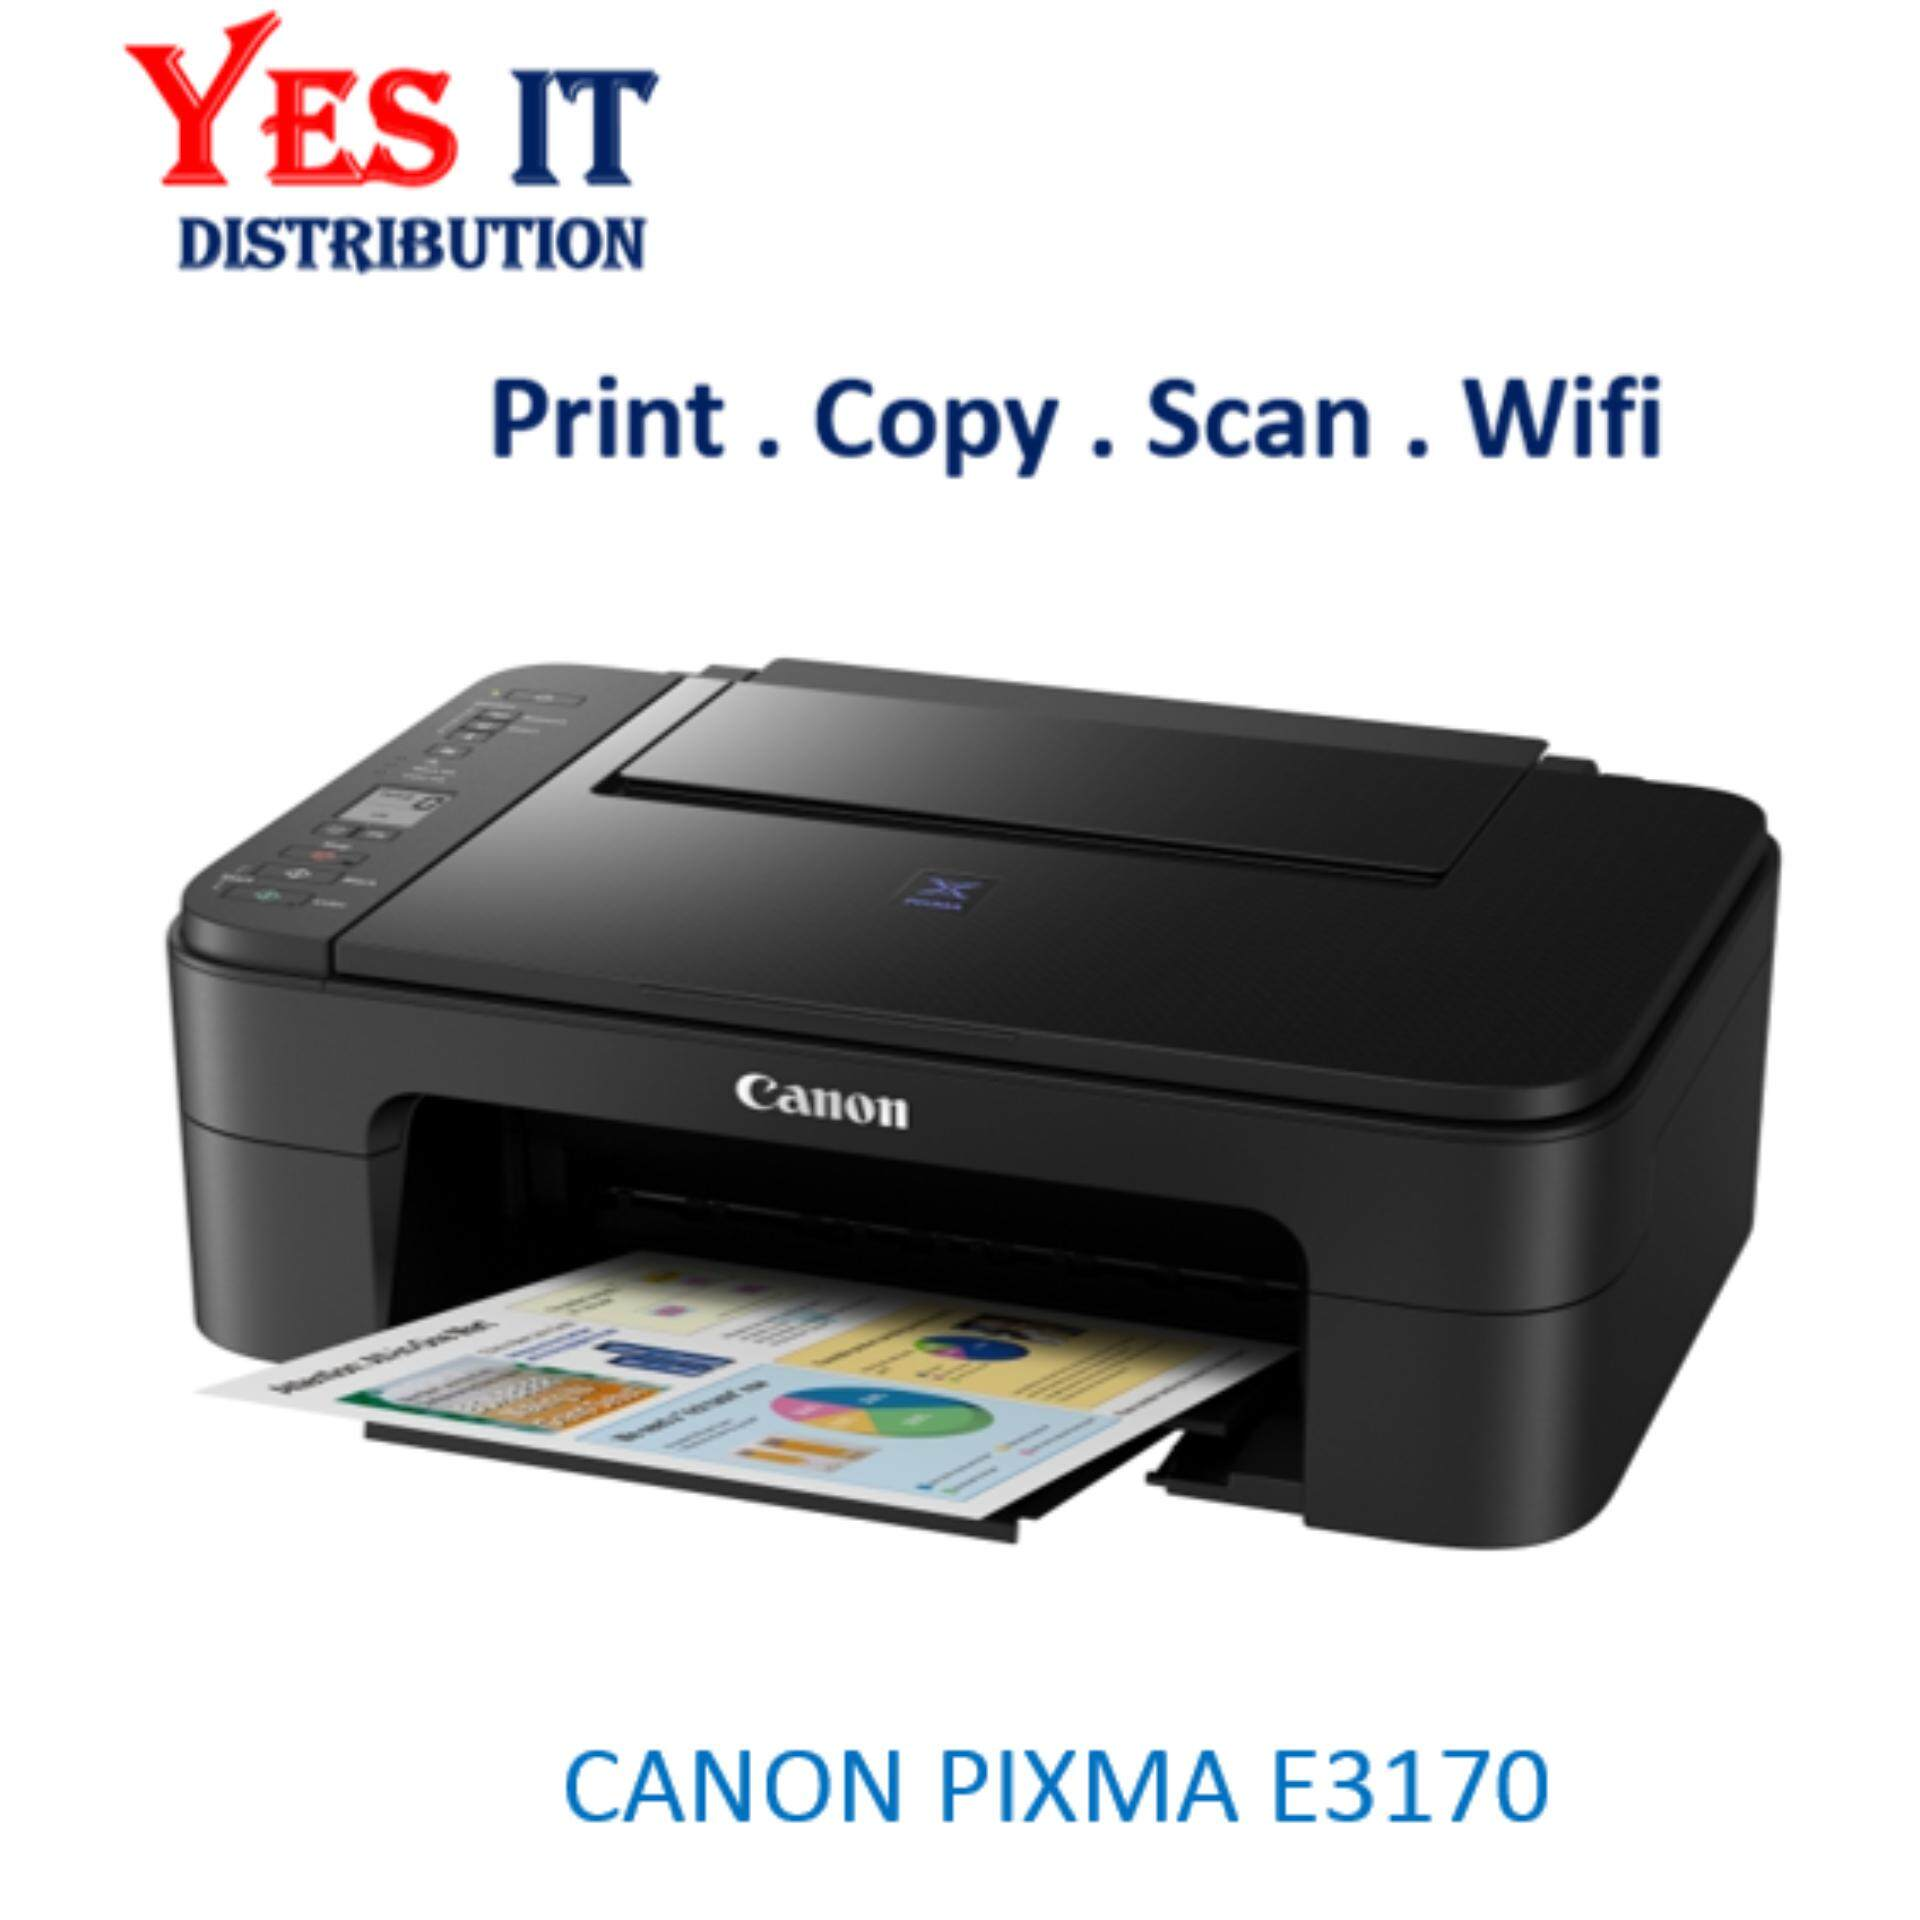 Canon Printers Malaysia Print Head G1000 G2000 G3000 Color Original Pixma Ink Efficient E3170 Stylish Wireless All In One Printer